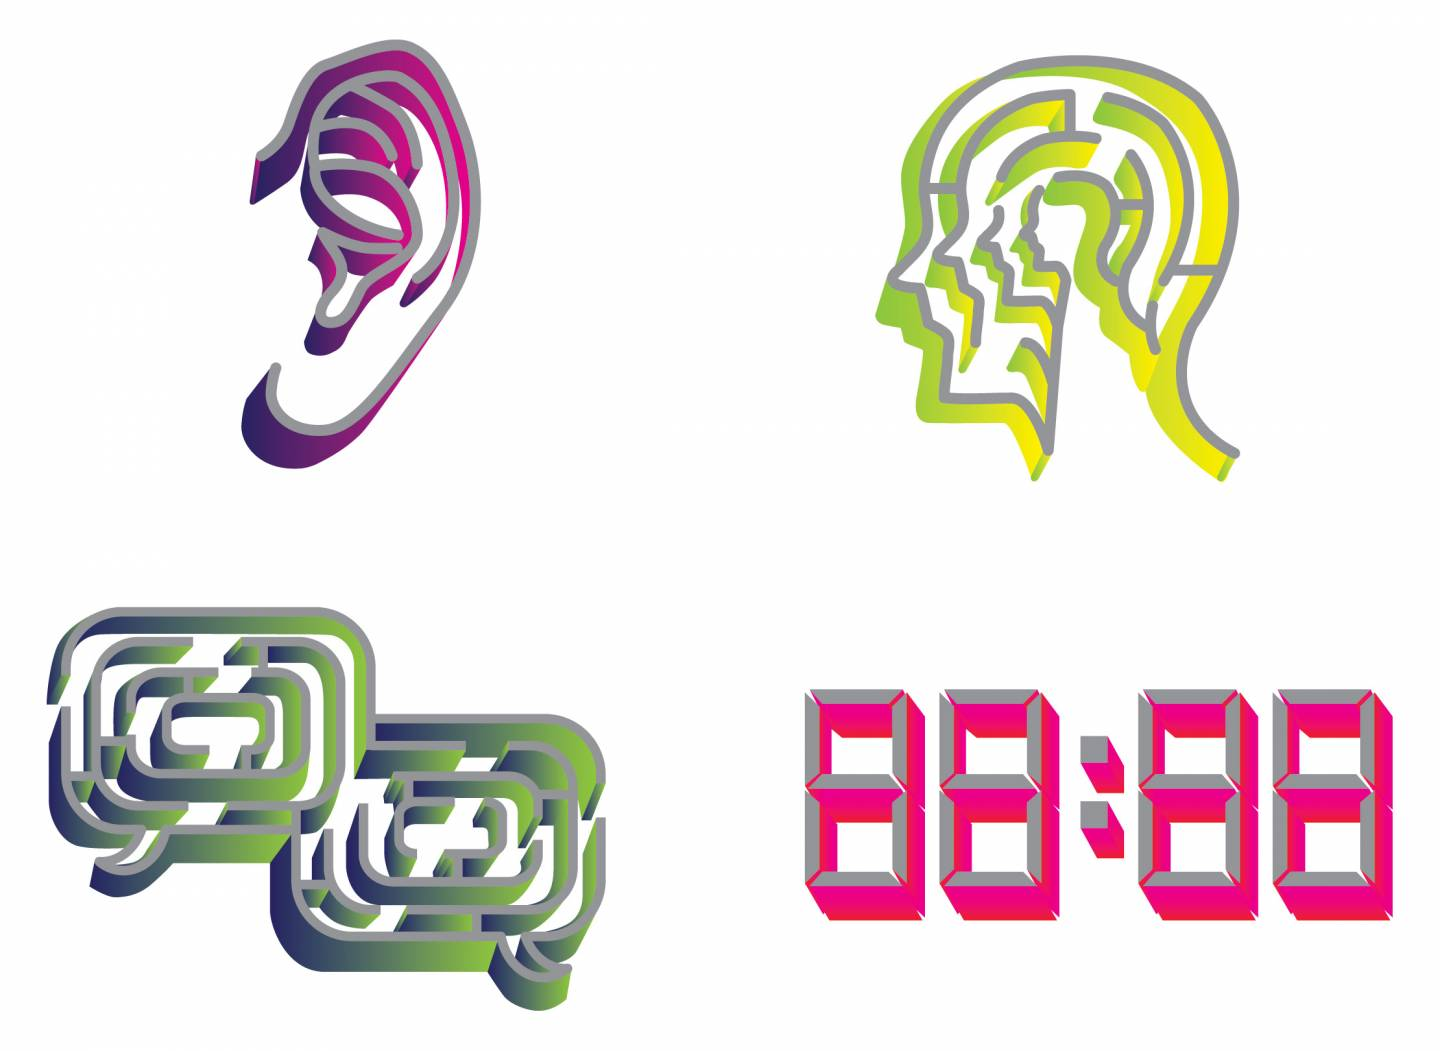 Maze-like icons of an ear, head, dialogue balloons, and clock